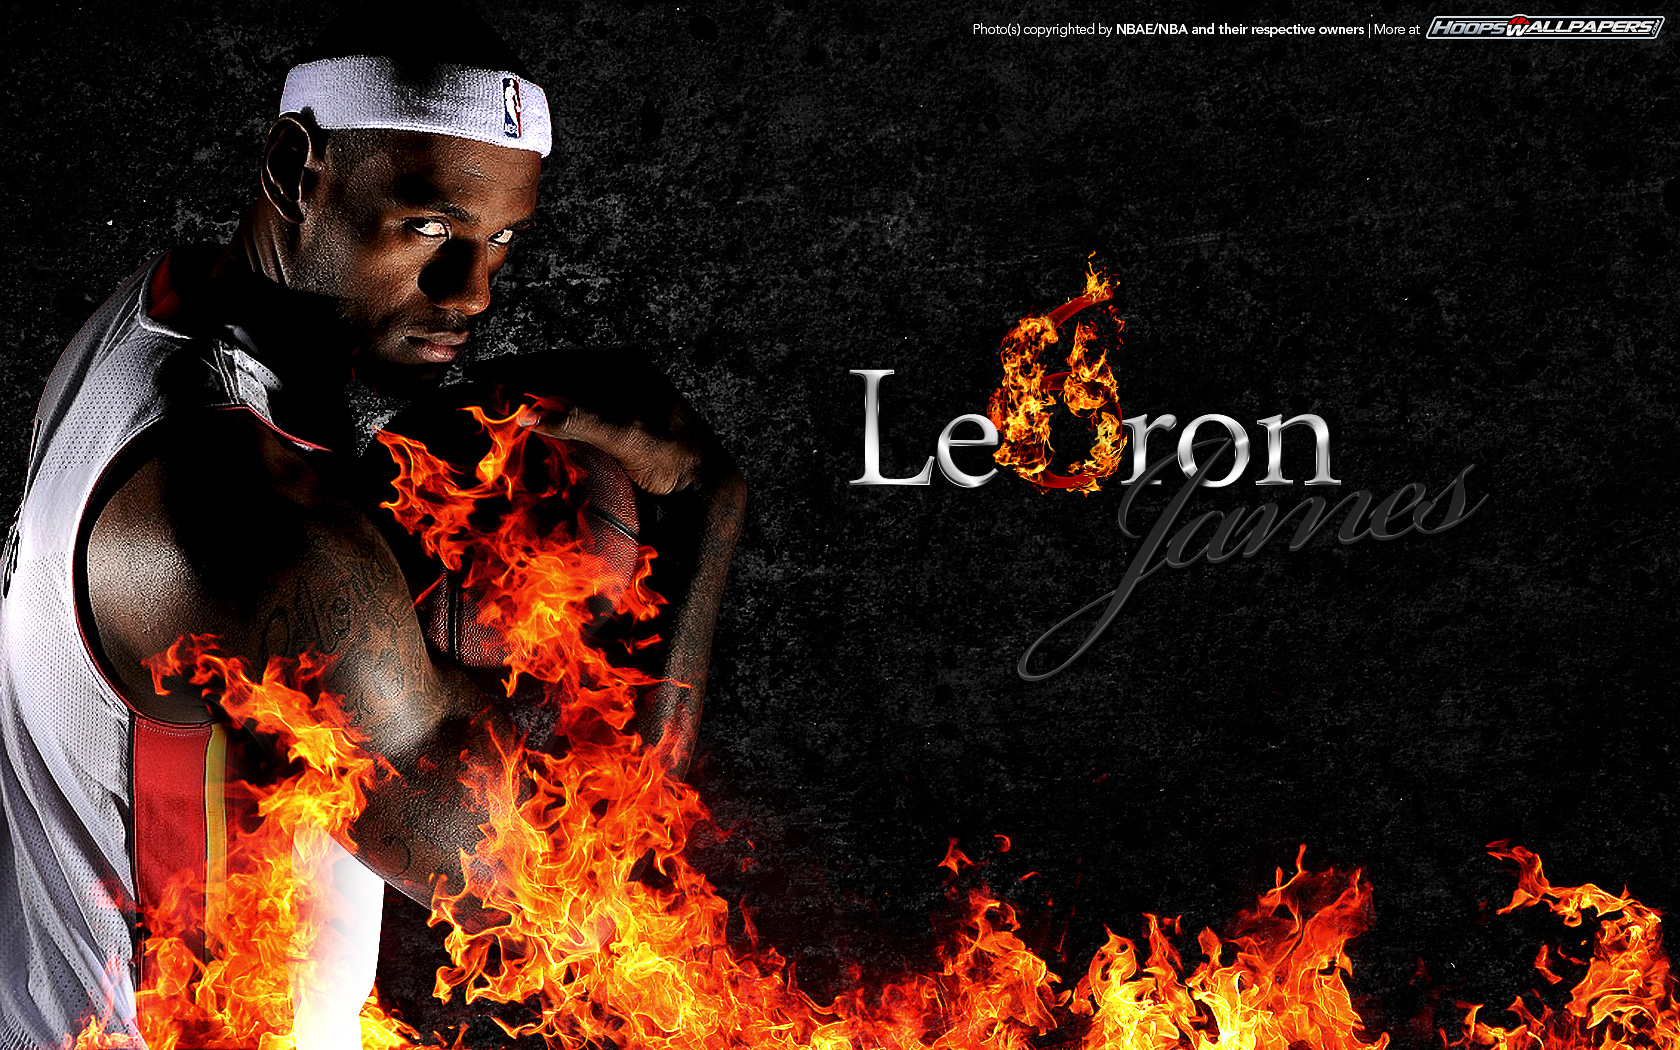 LeBron James 6 Miami Heat Wallpaper 1680x1050